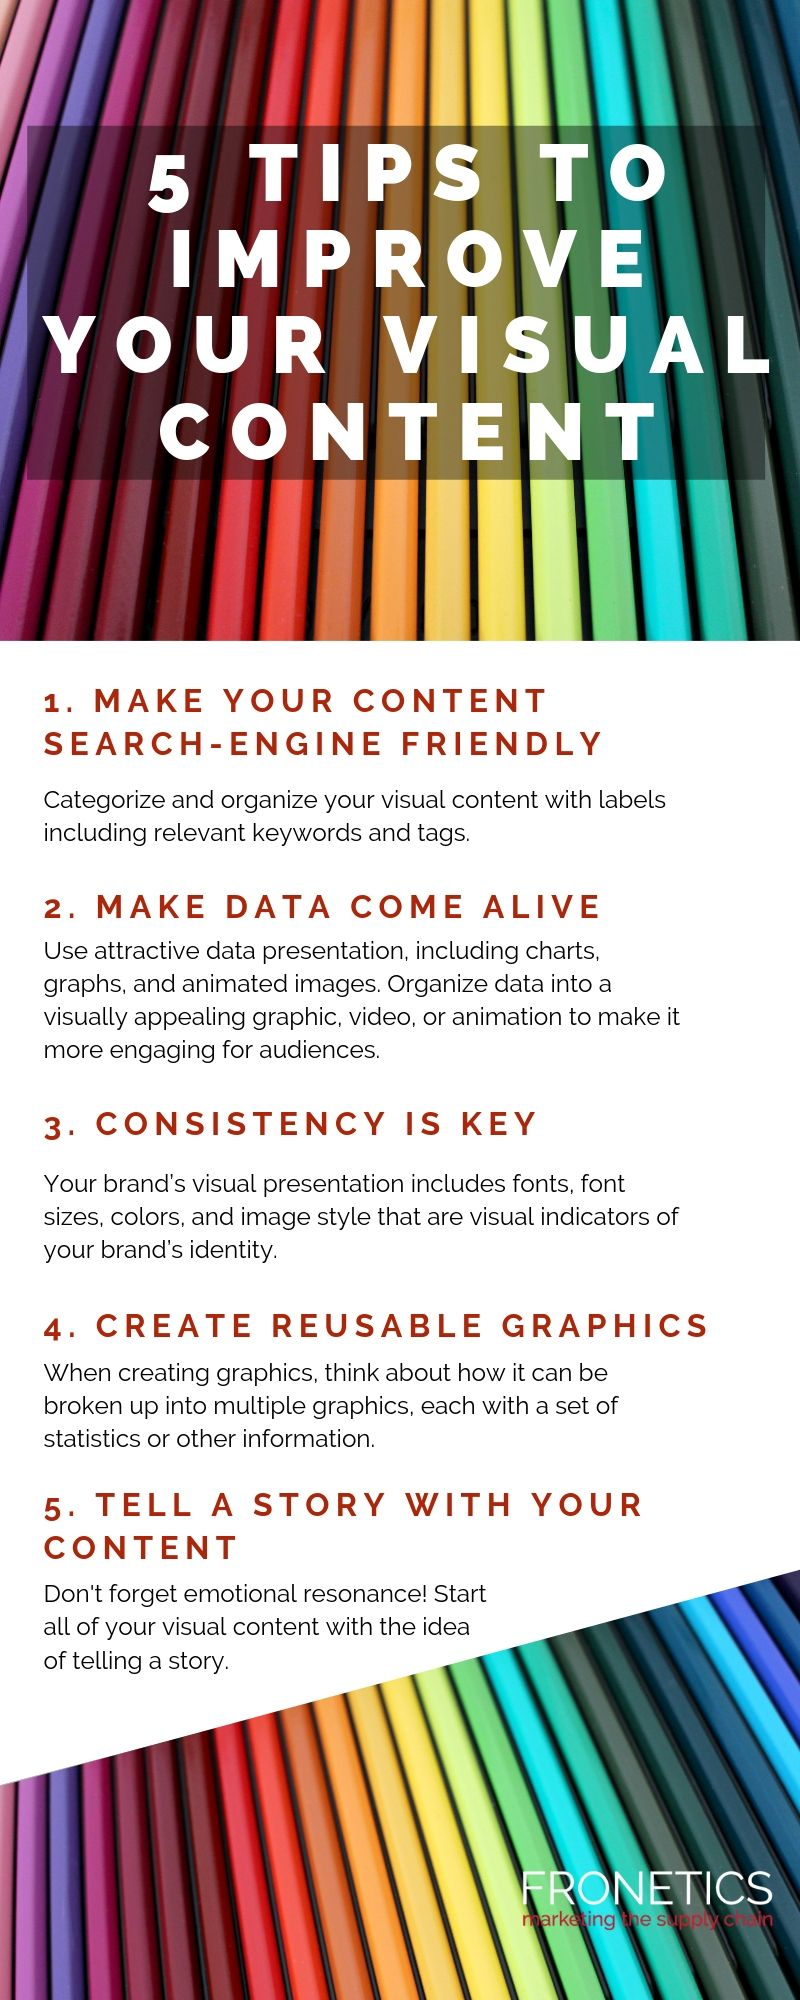 5 Tips to Improve Your Visual Content